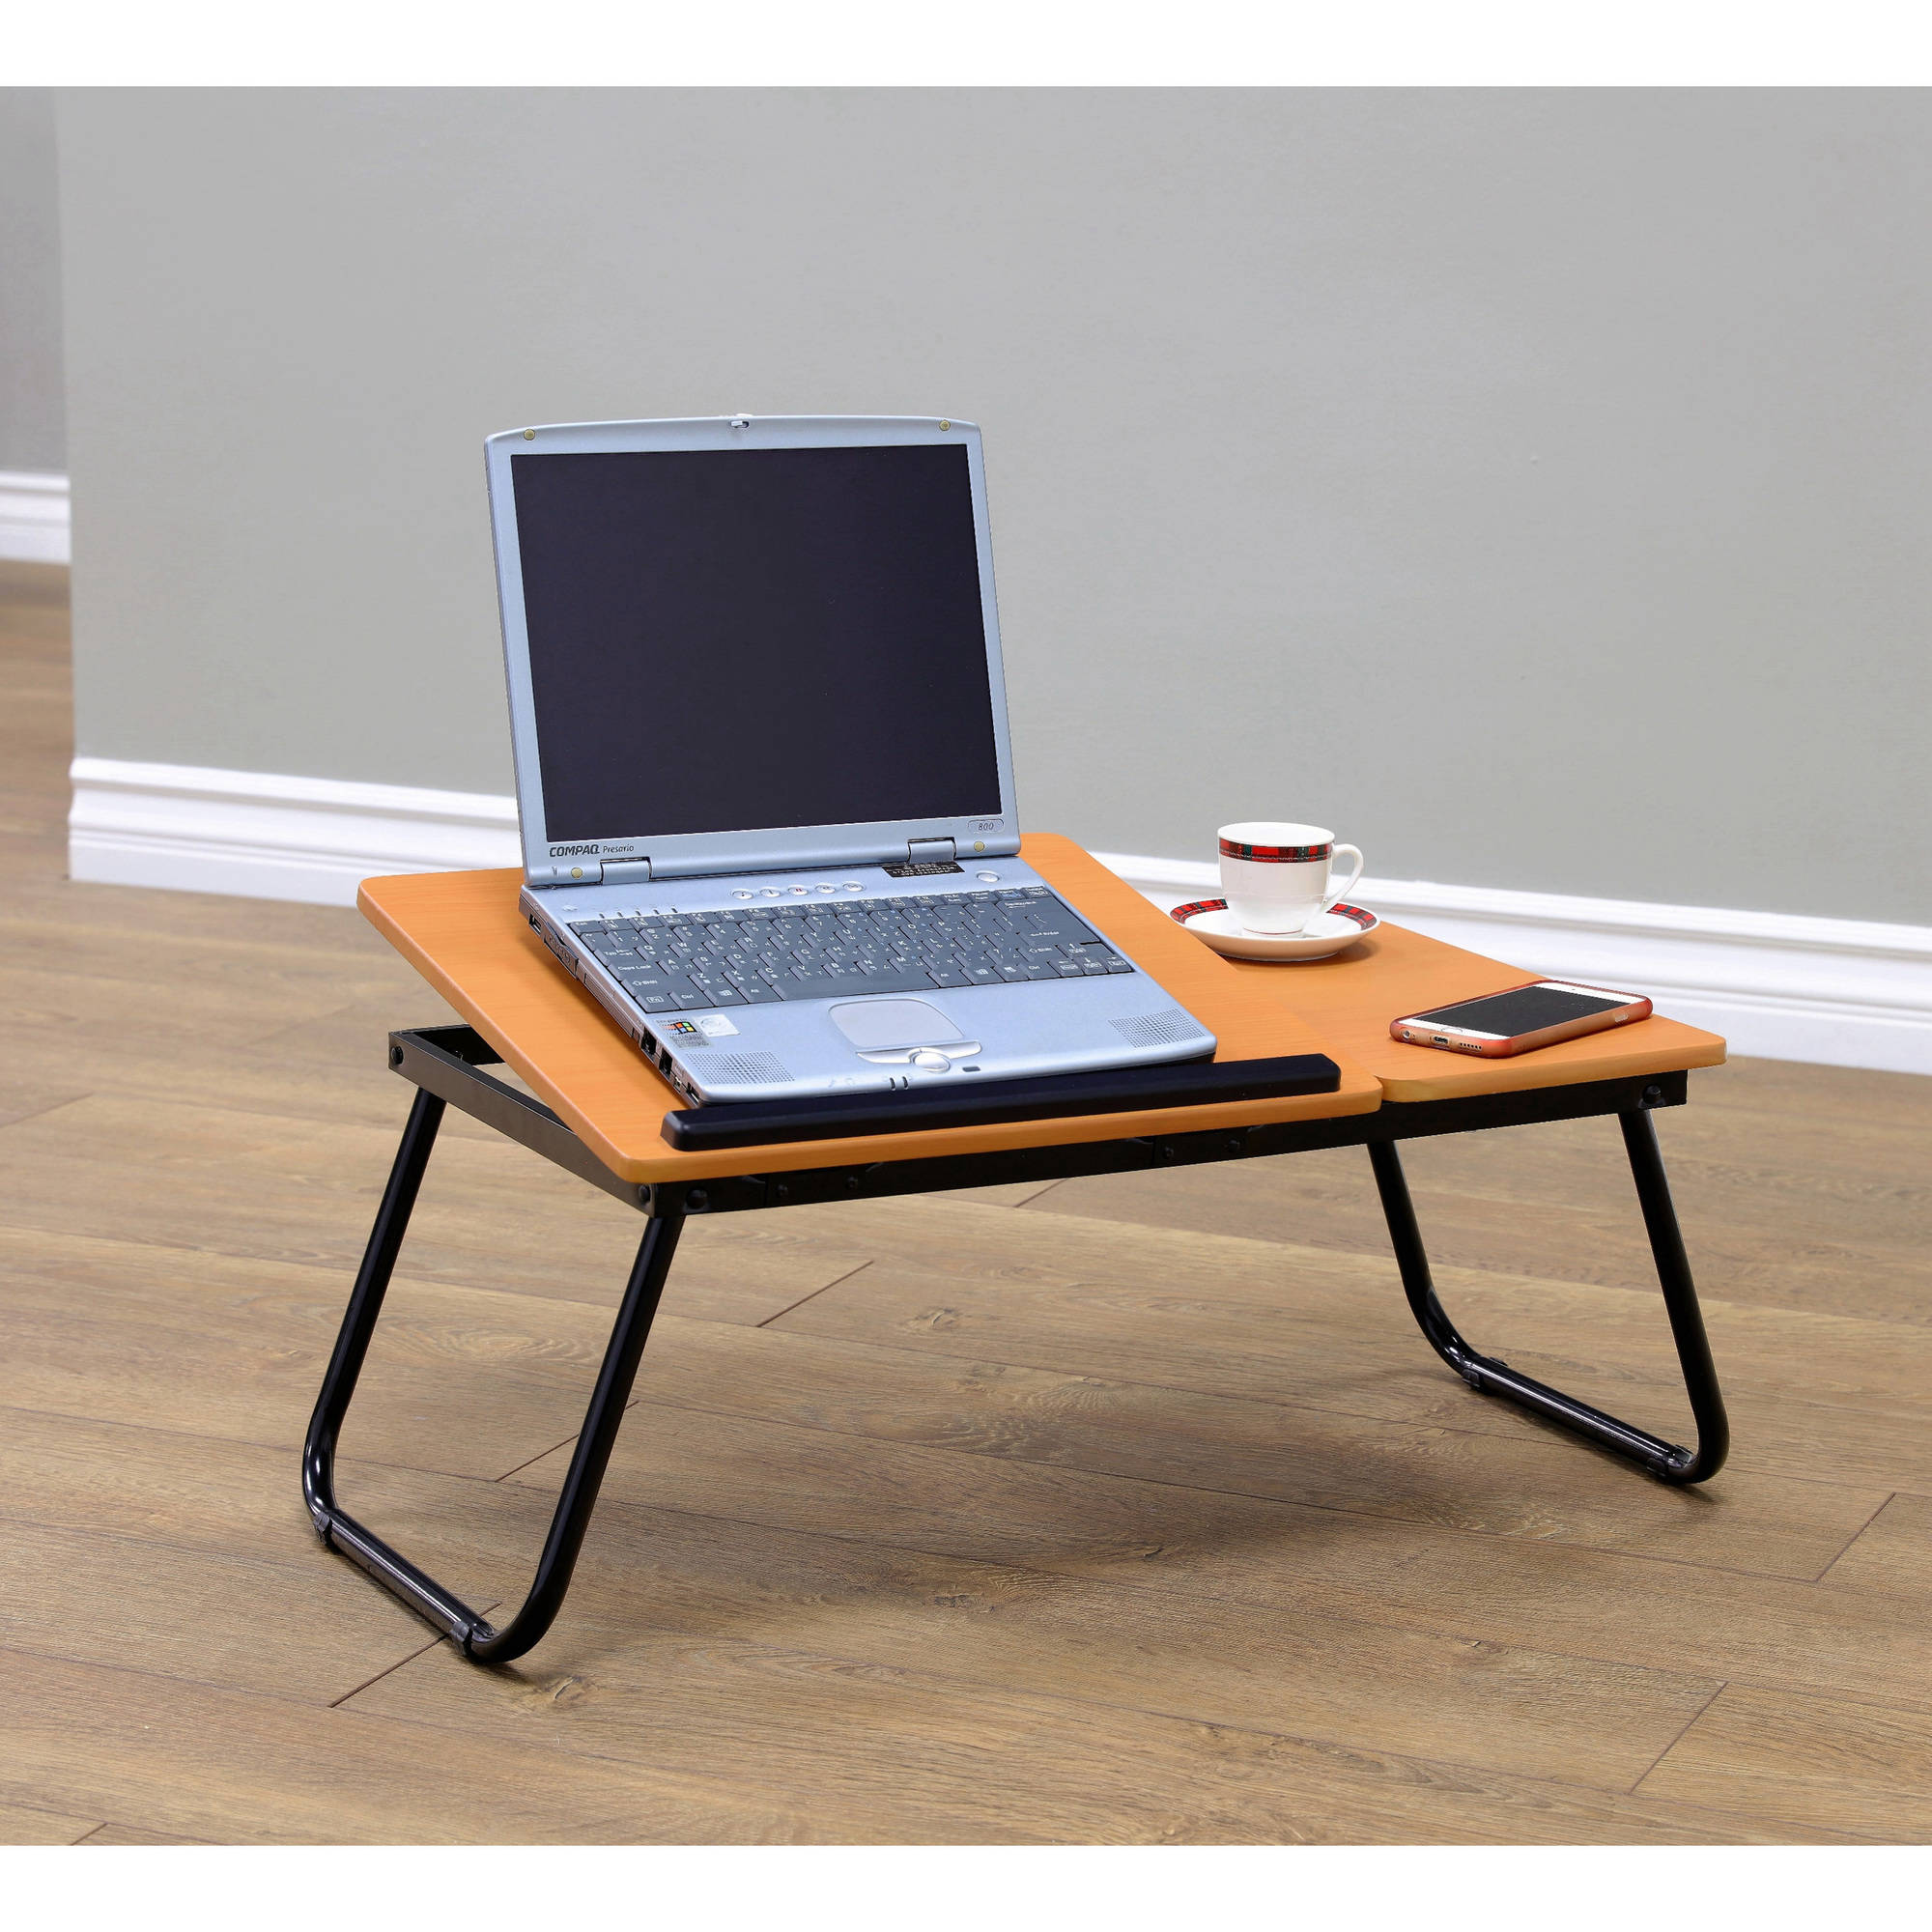 Home Craft Large Size Portable Lap Top Desk,Multiple Colors